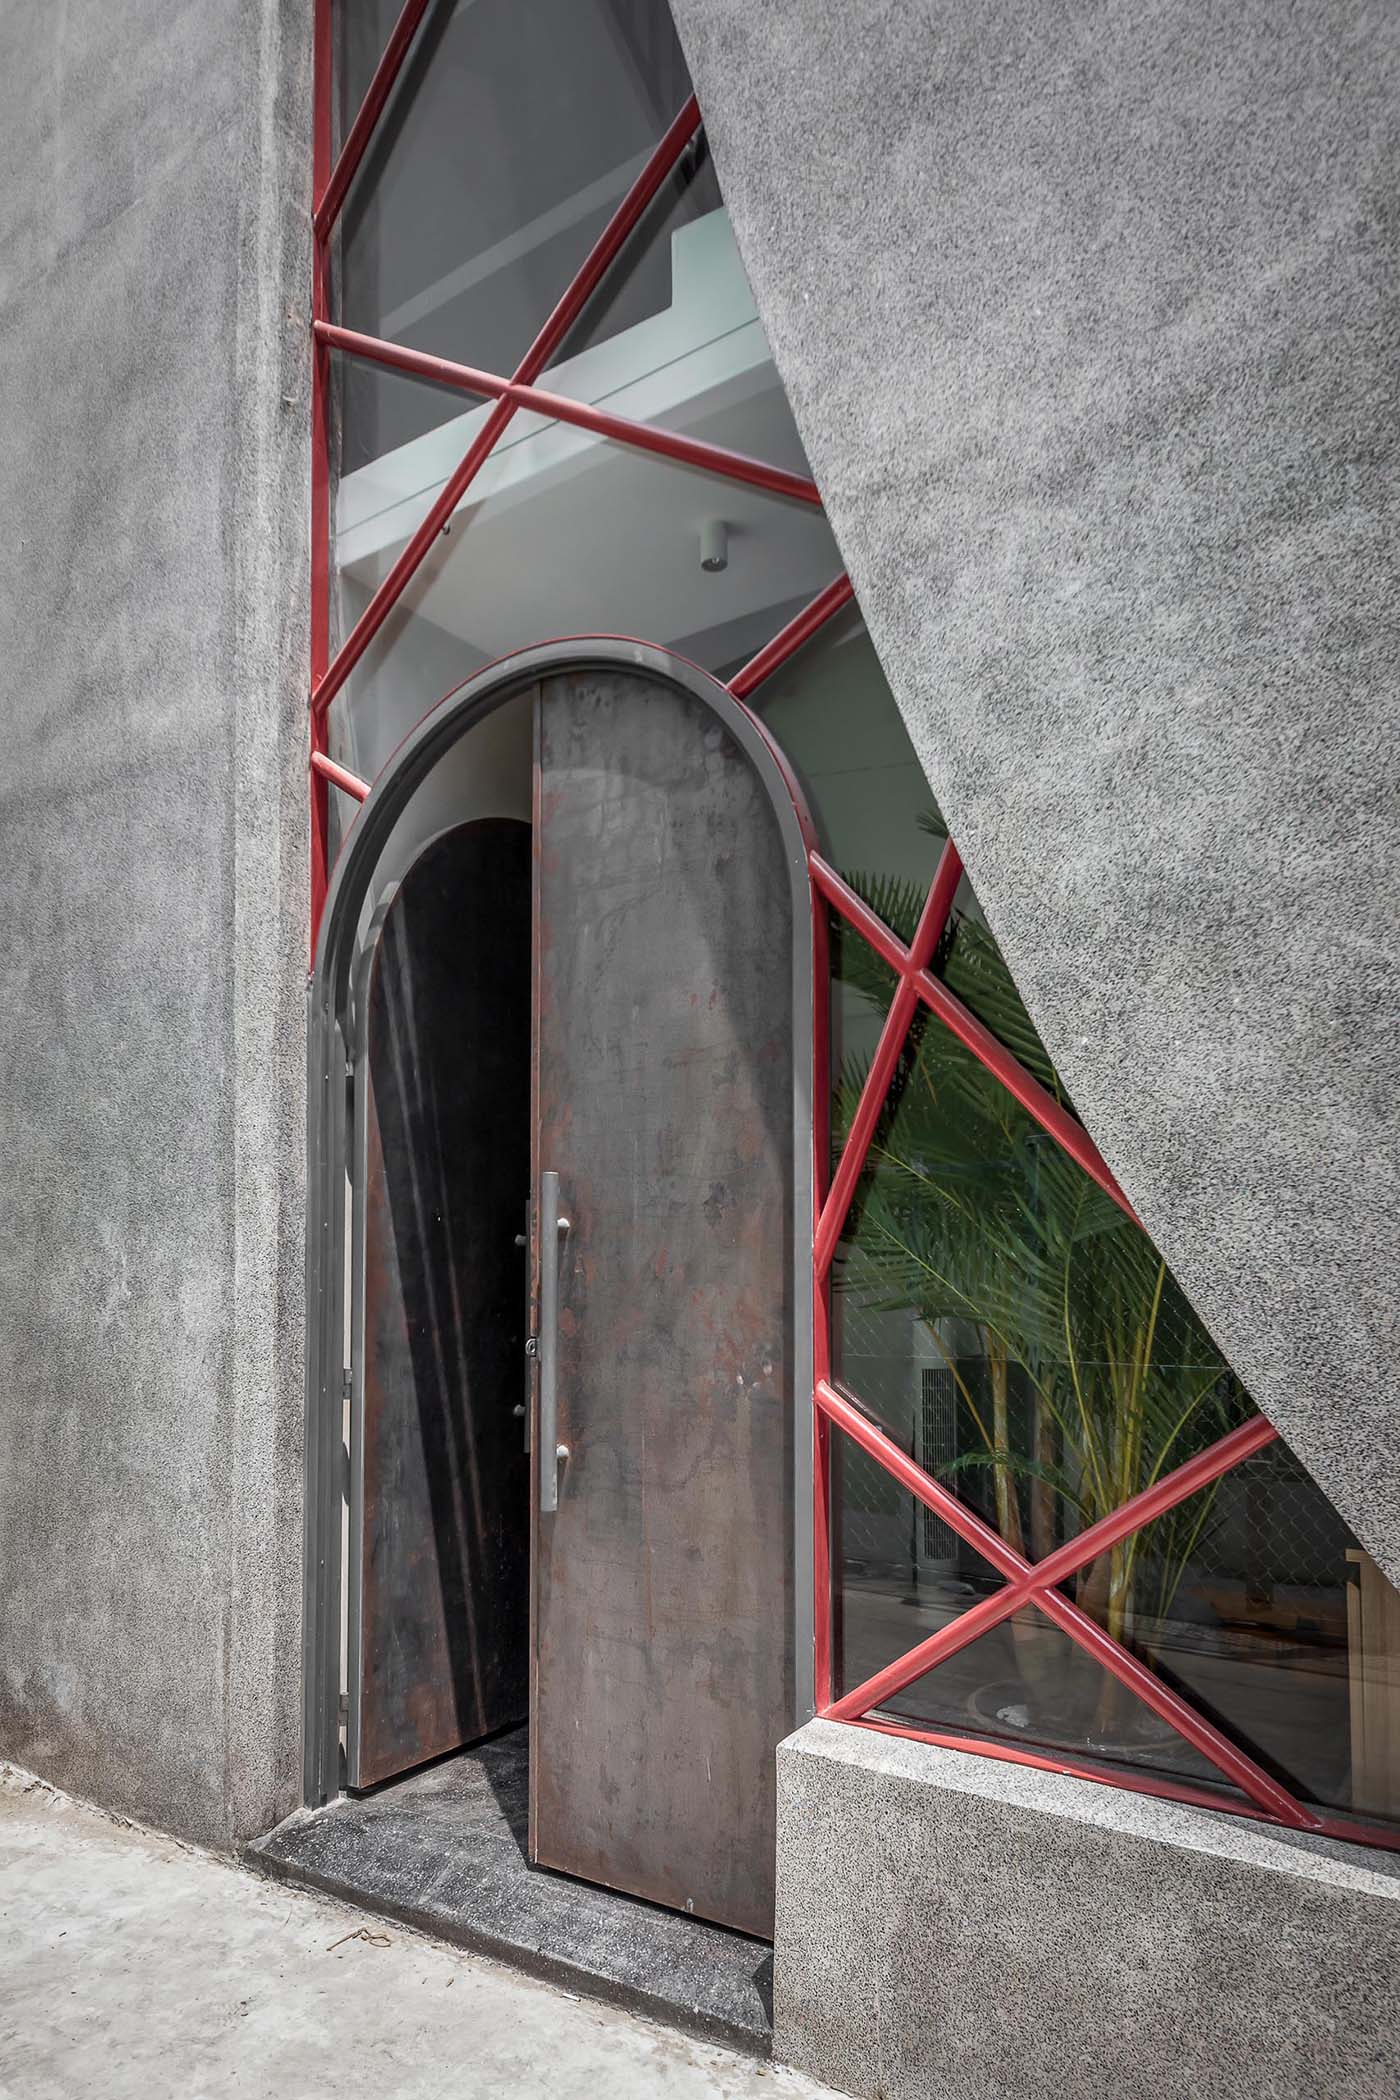 The large arched front door is made from steel, giving it an industrial look when paired with the concrete exterior.